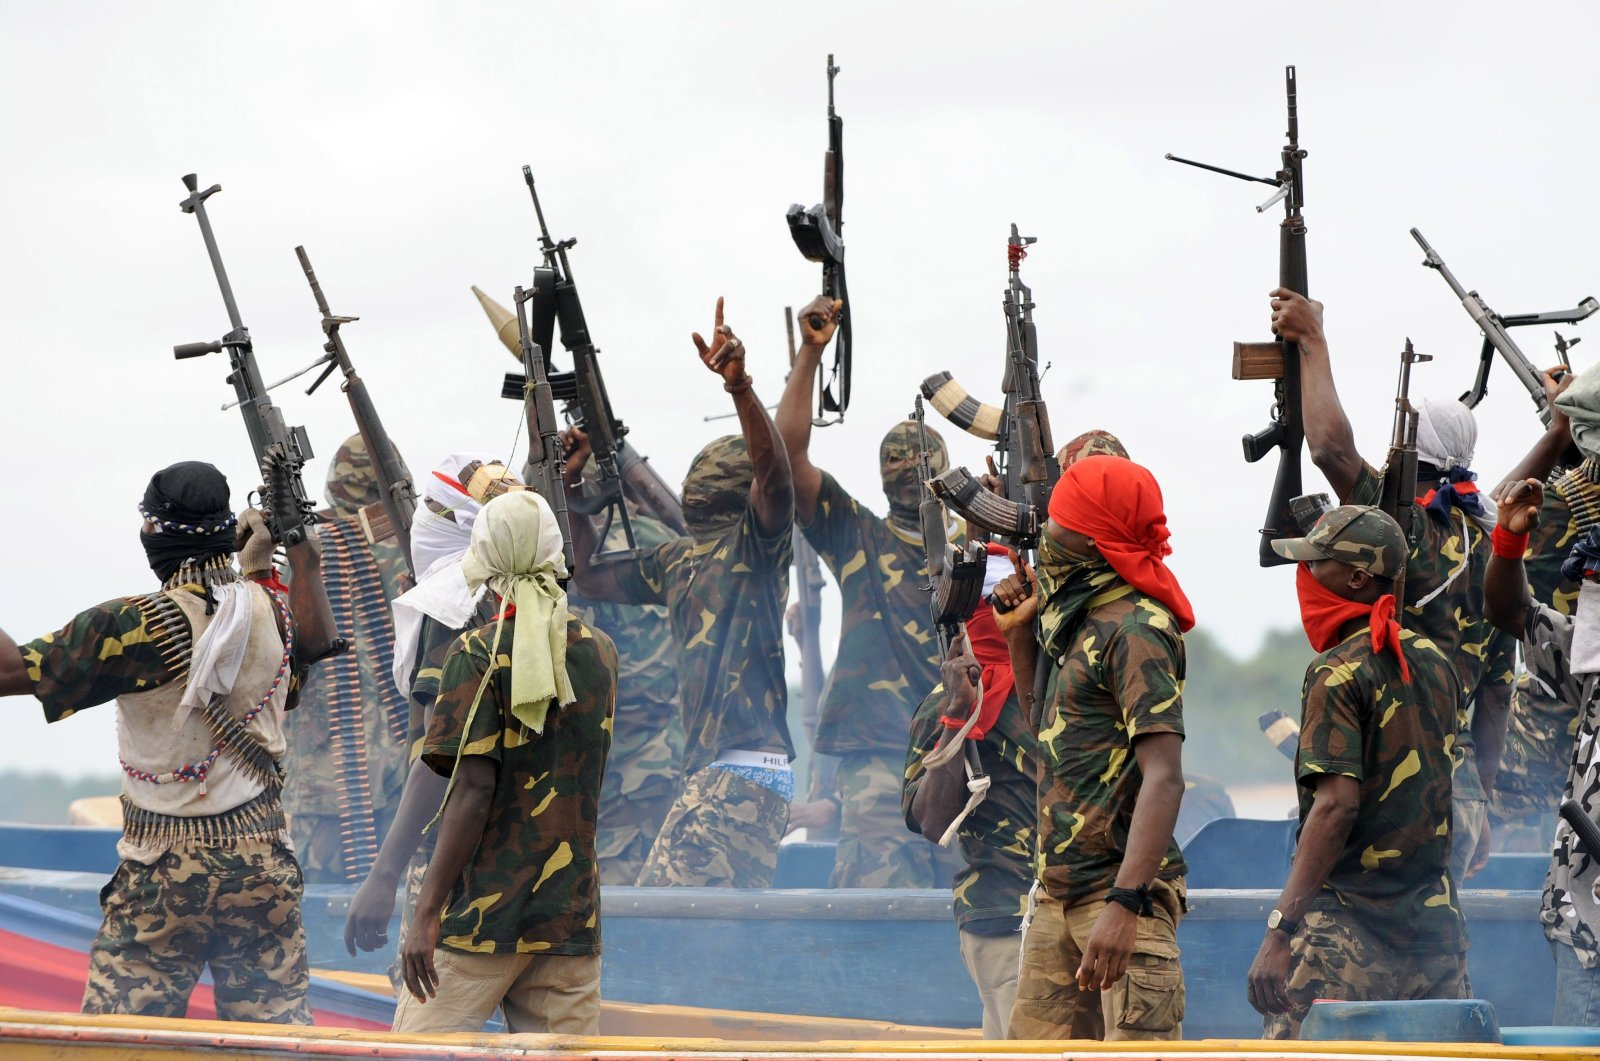 Fighters with the Movement for the Emancipation of the Niger Delta (MEND) raise their rifles to celebrate news of a successful operation by their colleagues against the Nigerian army in the Niger Delta, Sept. 17, 2008. (AFP Photo)